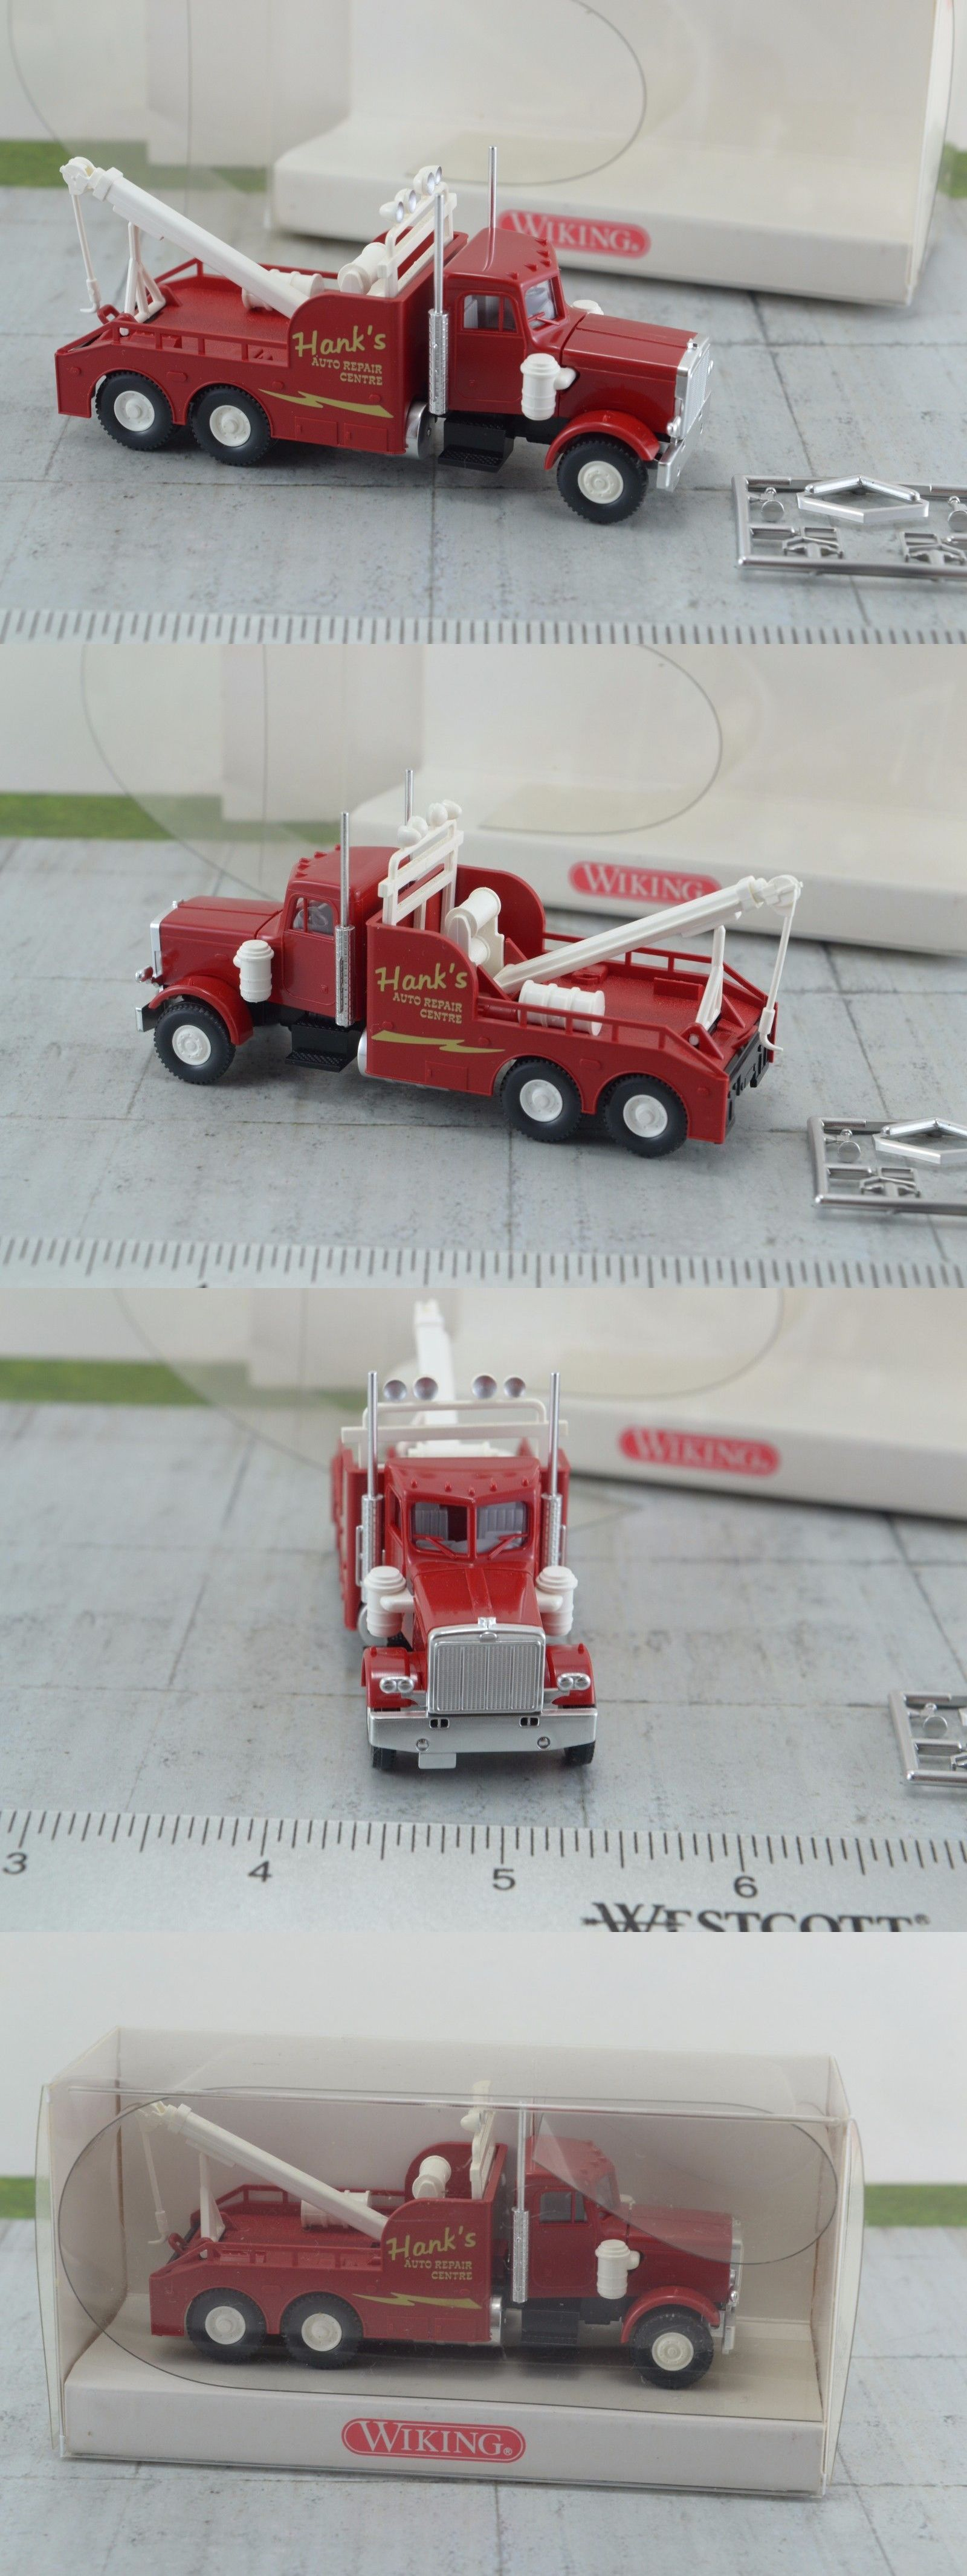 20e7f41a54 Other HO Scale 484  Wiking Peterbilt Tow Truck Hank S Auto Repair - 1 87 Ho  Scale -  BUY IT NOW ONLY   23.99 on  eBay  other  scale  wiking  peterbilt  ...